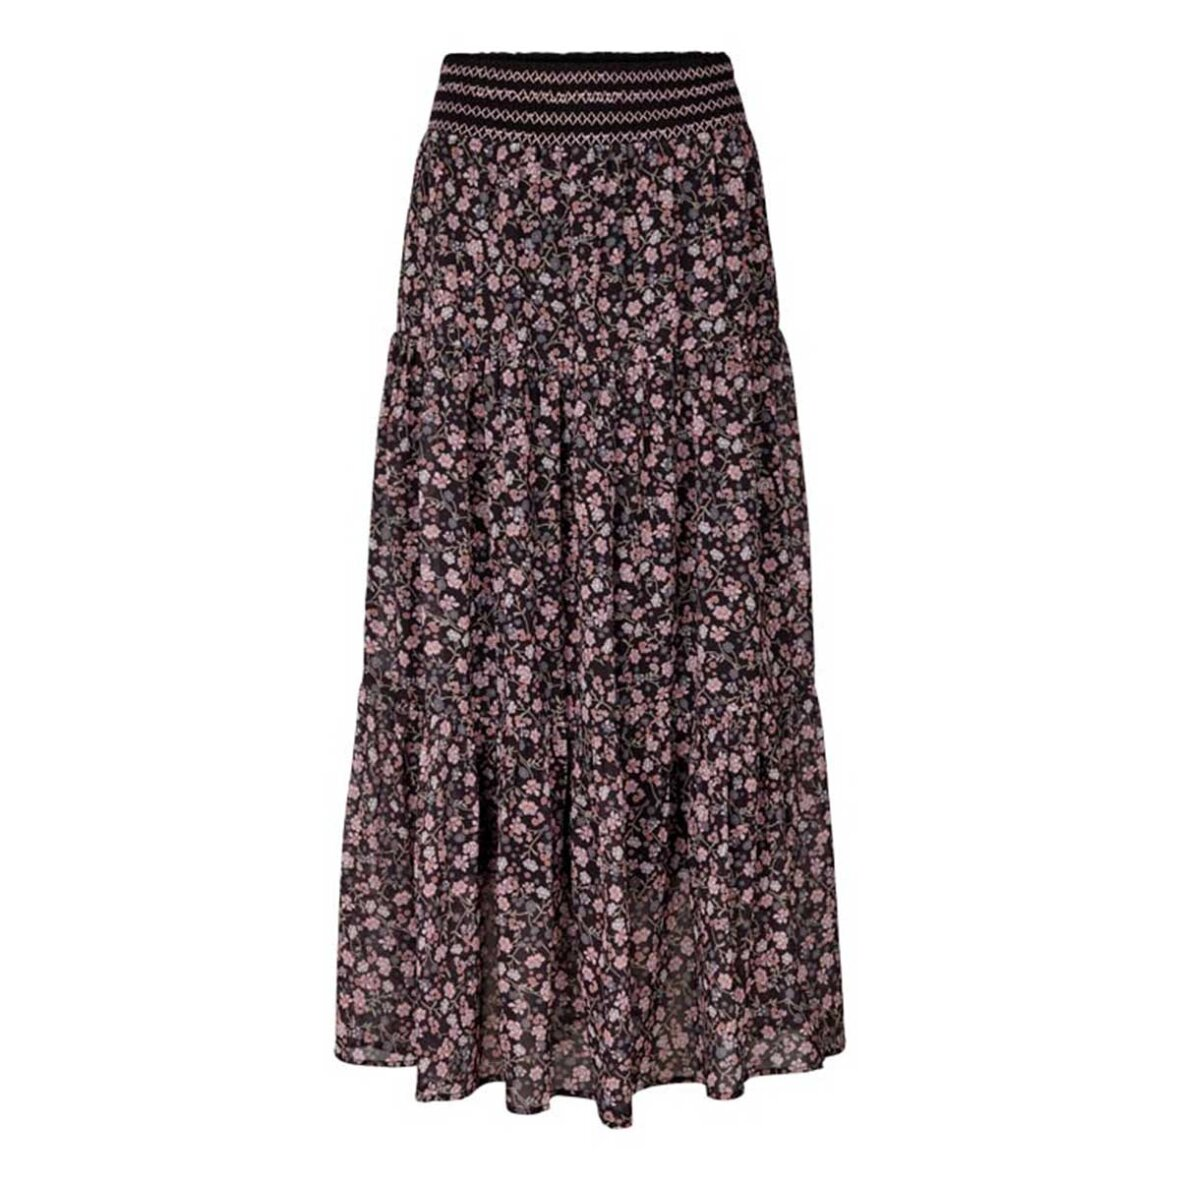 Stokværk NEDERDELE Lollys Laundry BONNY SKIRT | FLOWER